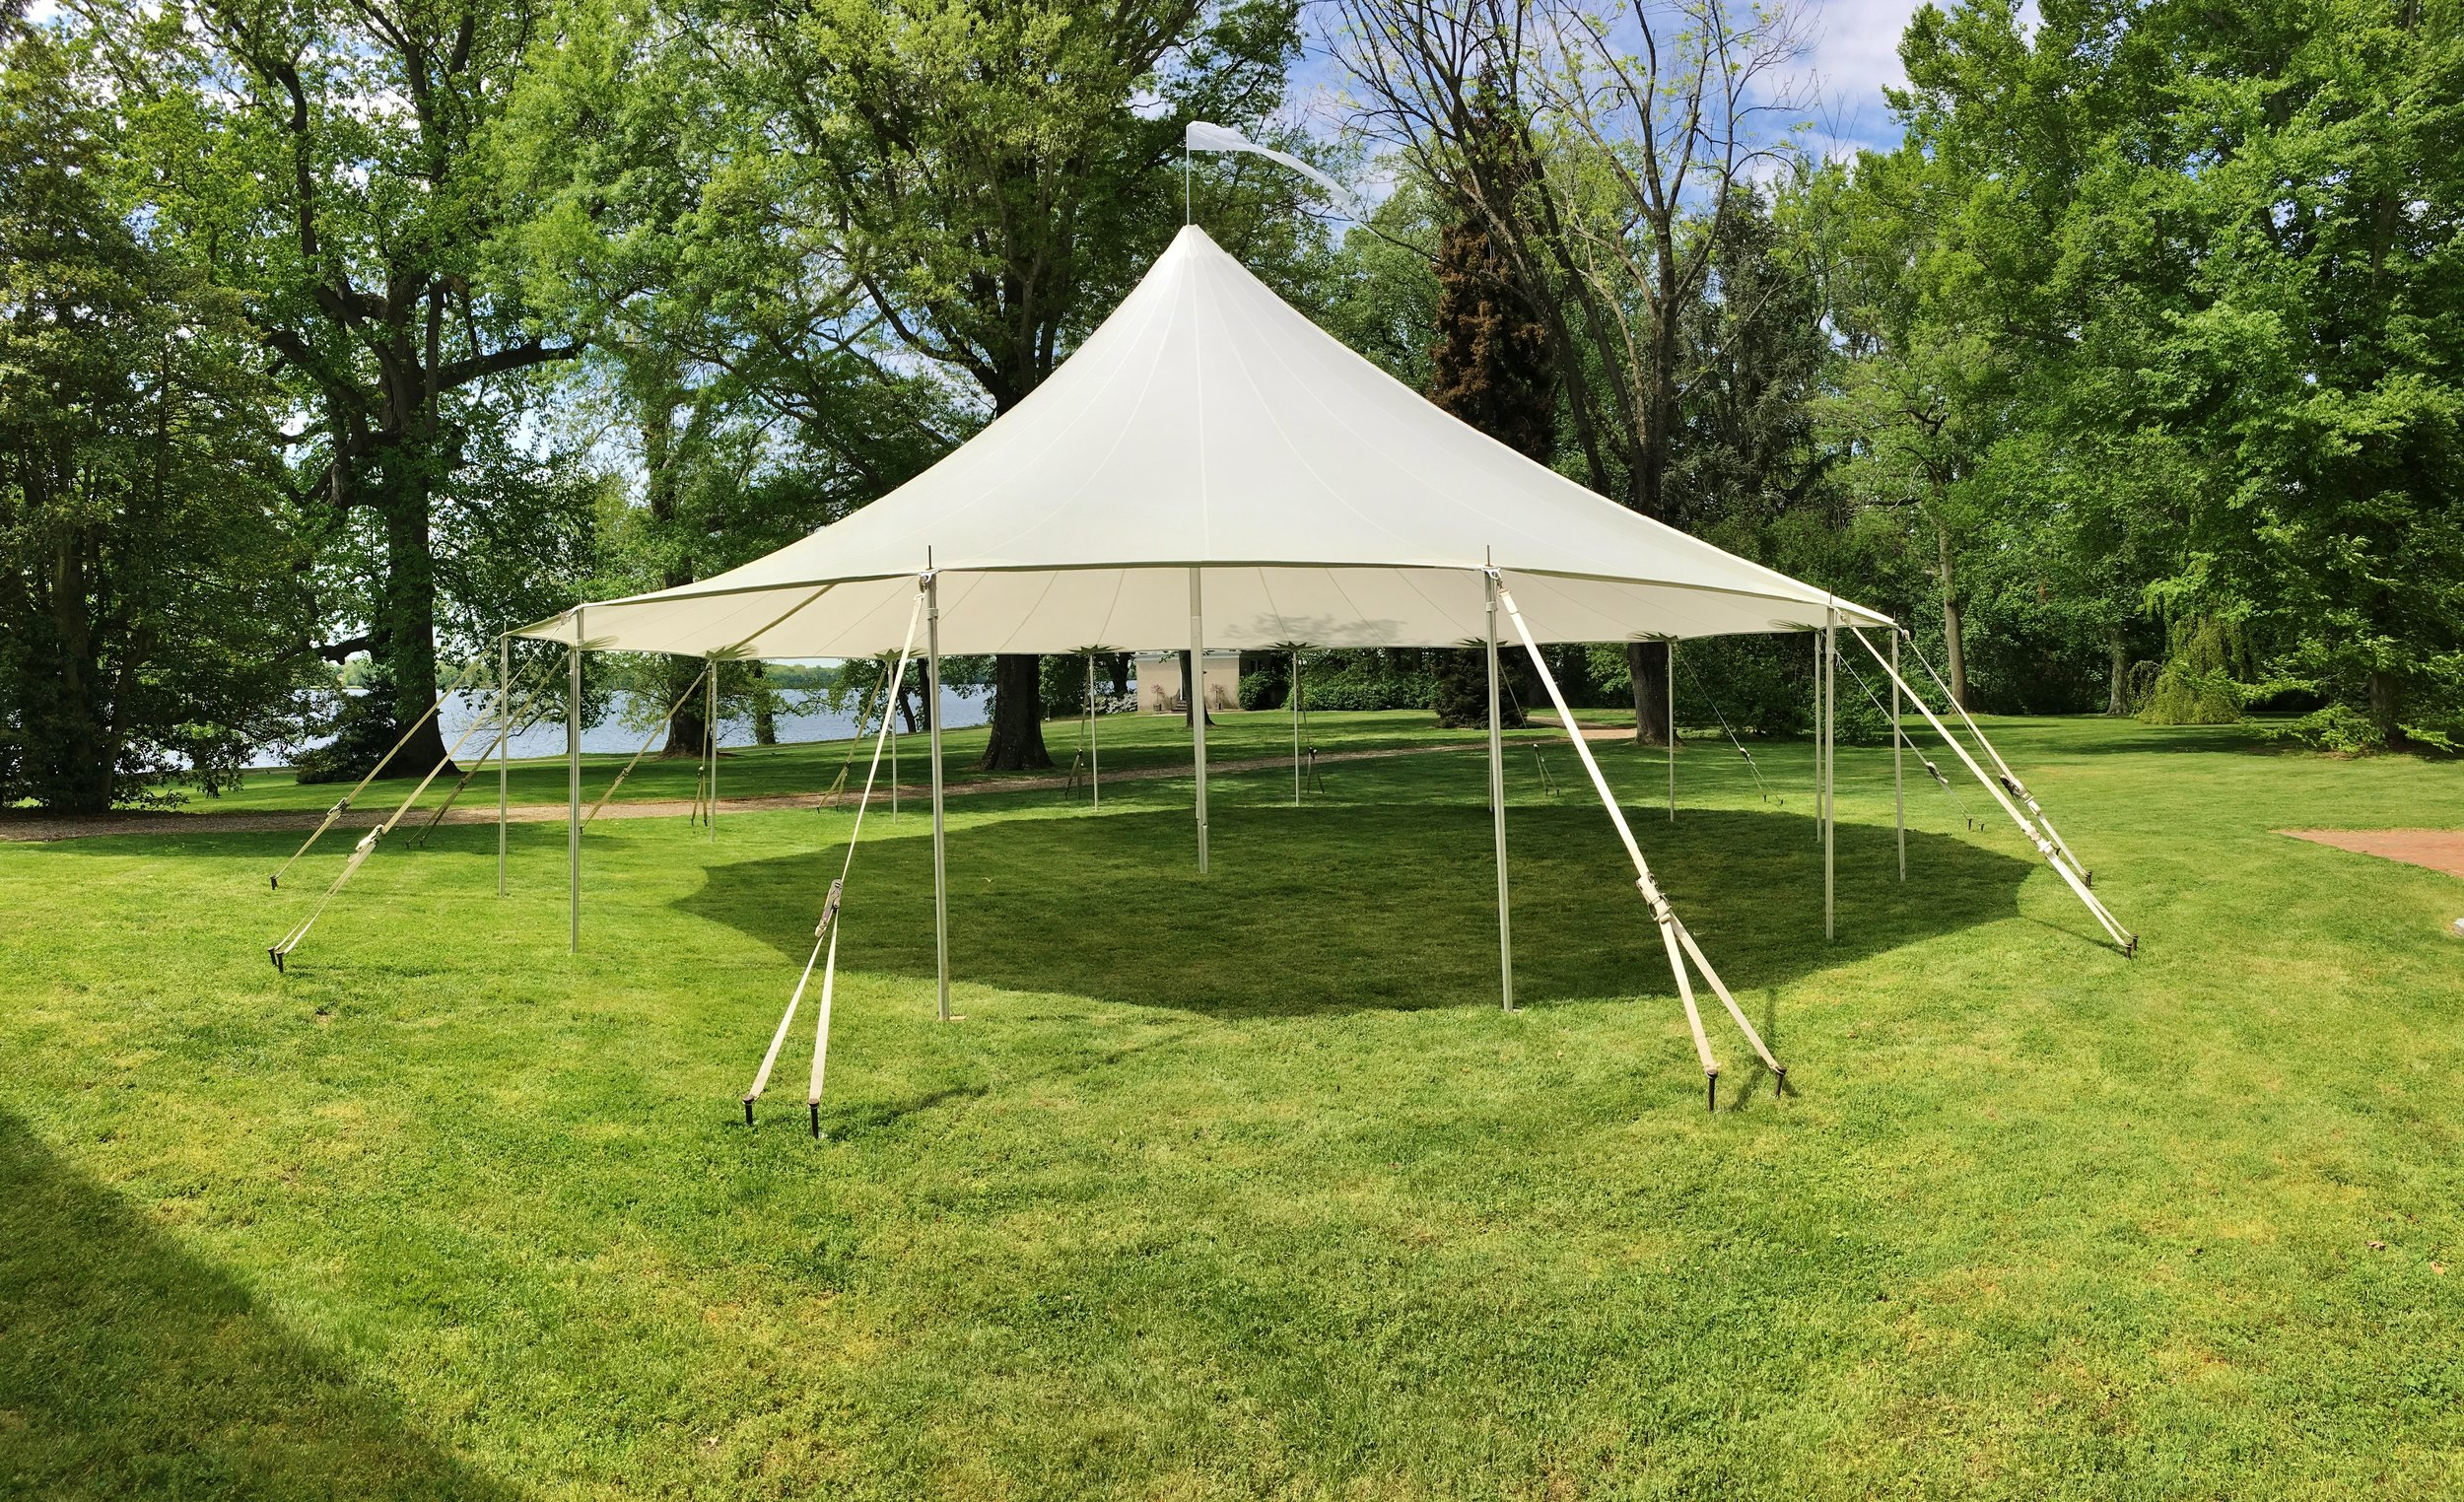 Gorgeous sailcloth tent for rent in Enola, PA